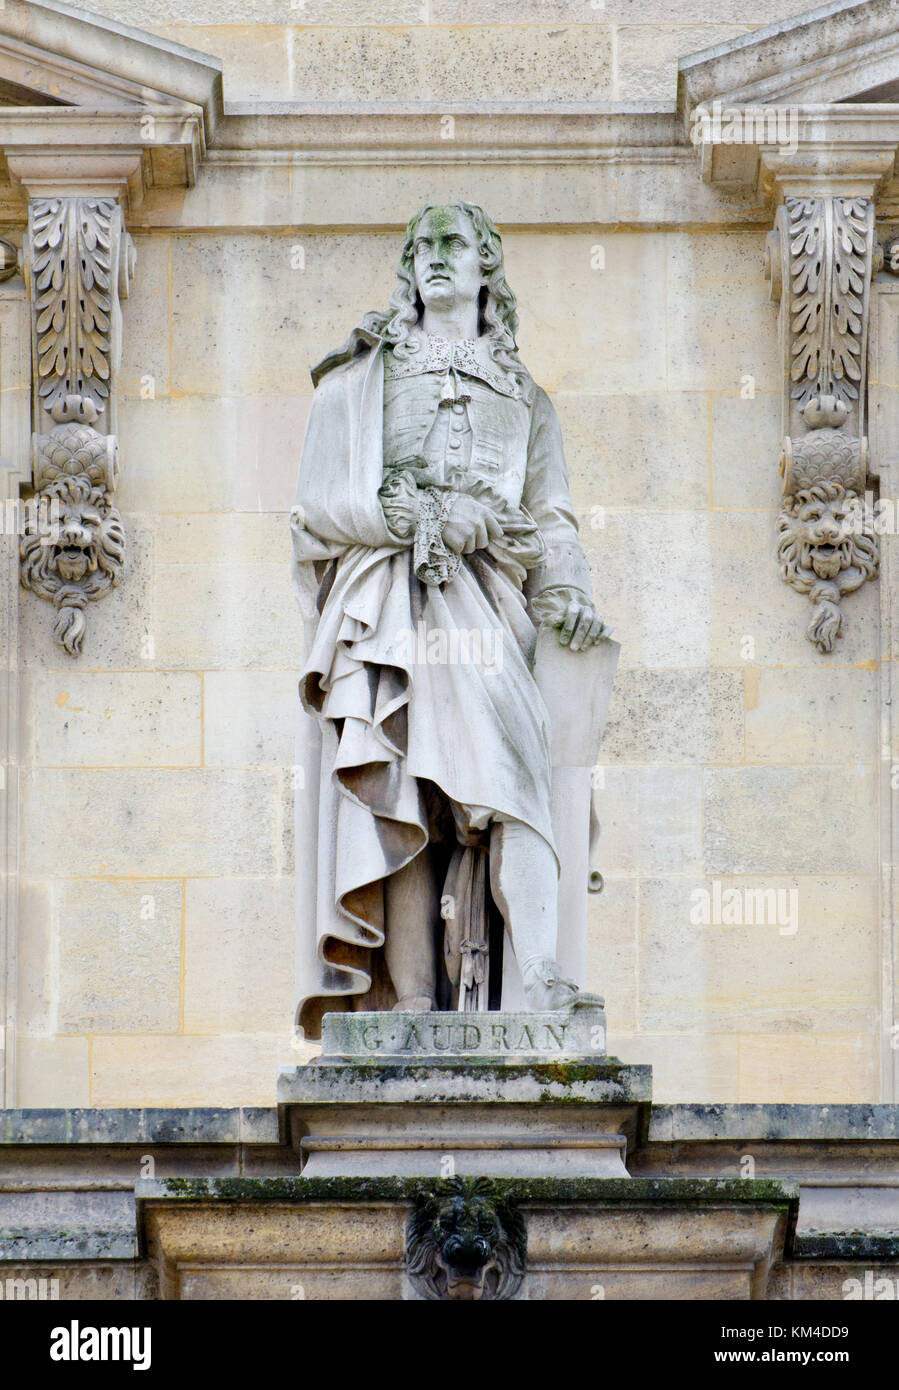 Paris, France. Palais du Louvre. Statue in the Cour Napoleon: Gérard Audran (1640 – 1703), French engraver, - Stock Image